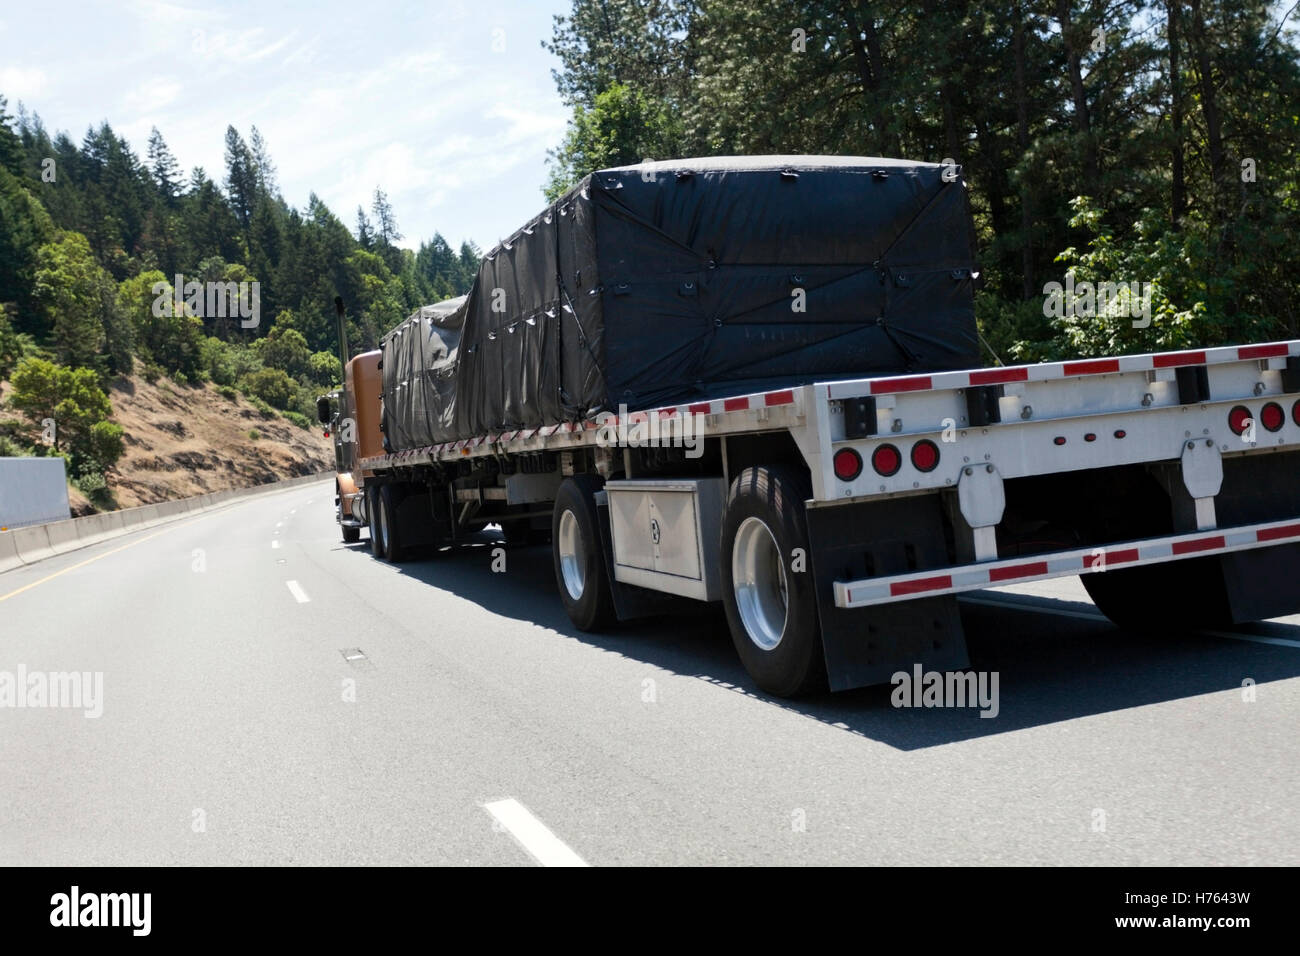 Flatbed trailer hauling tarp-covered freight - Stock Image